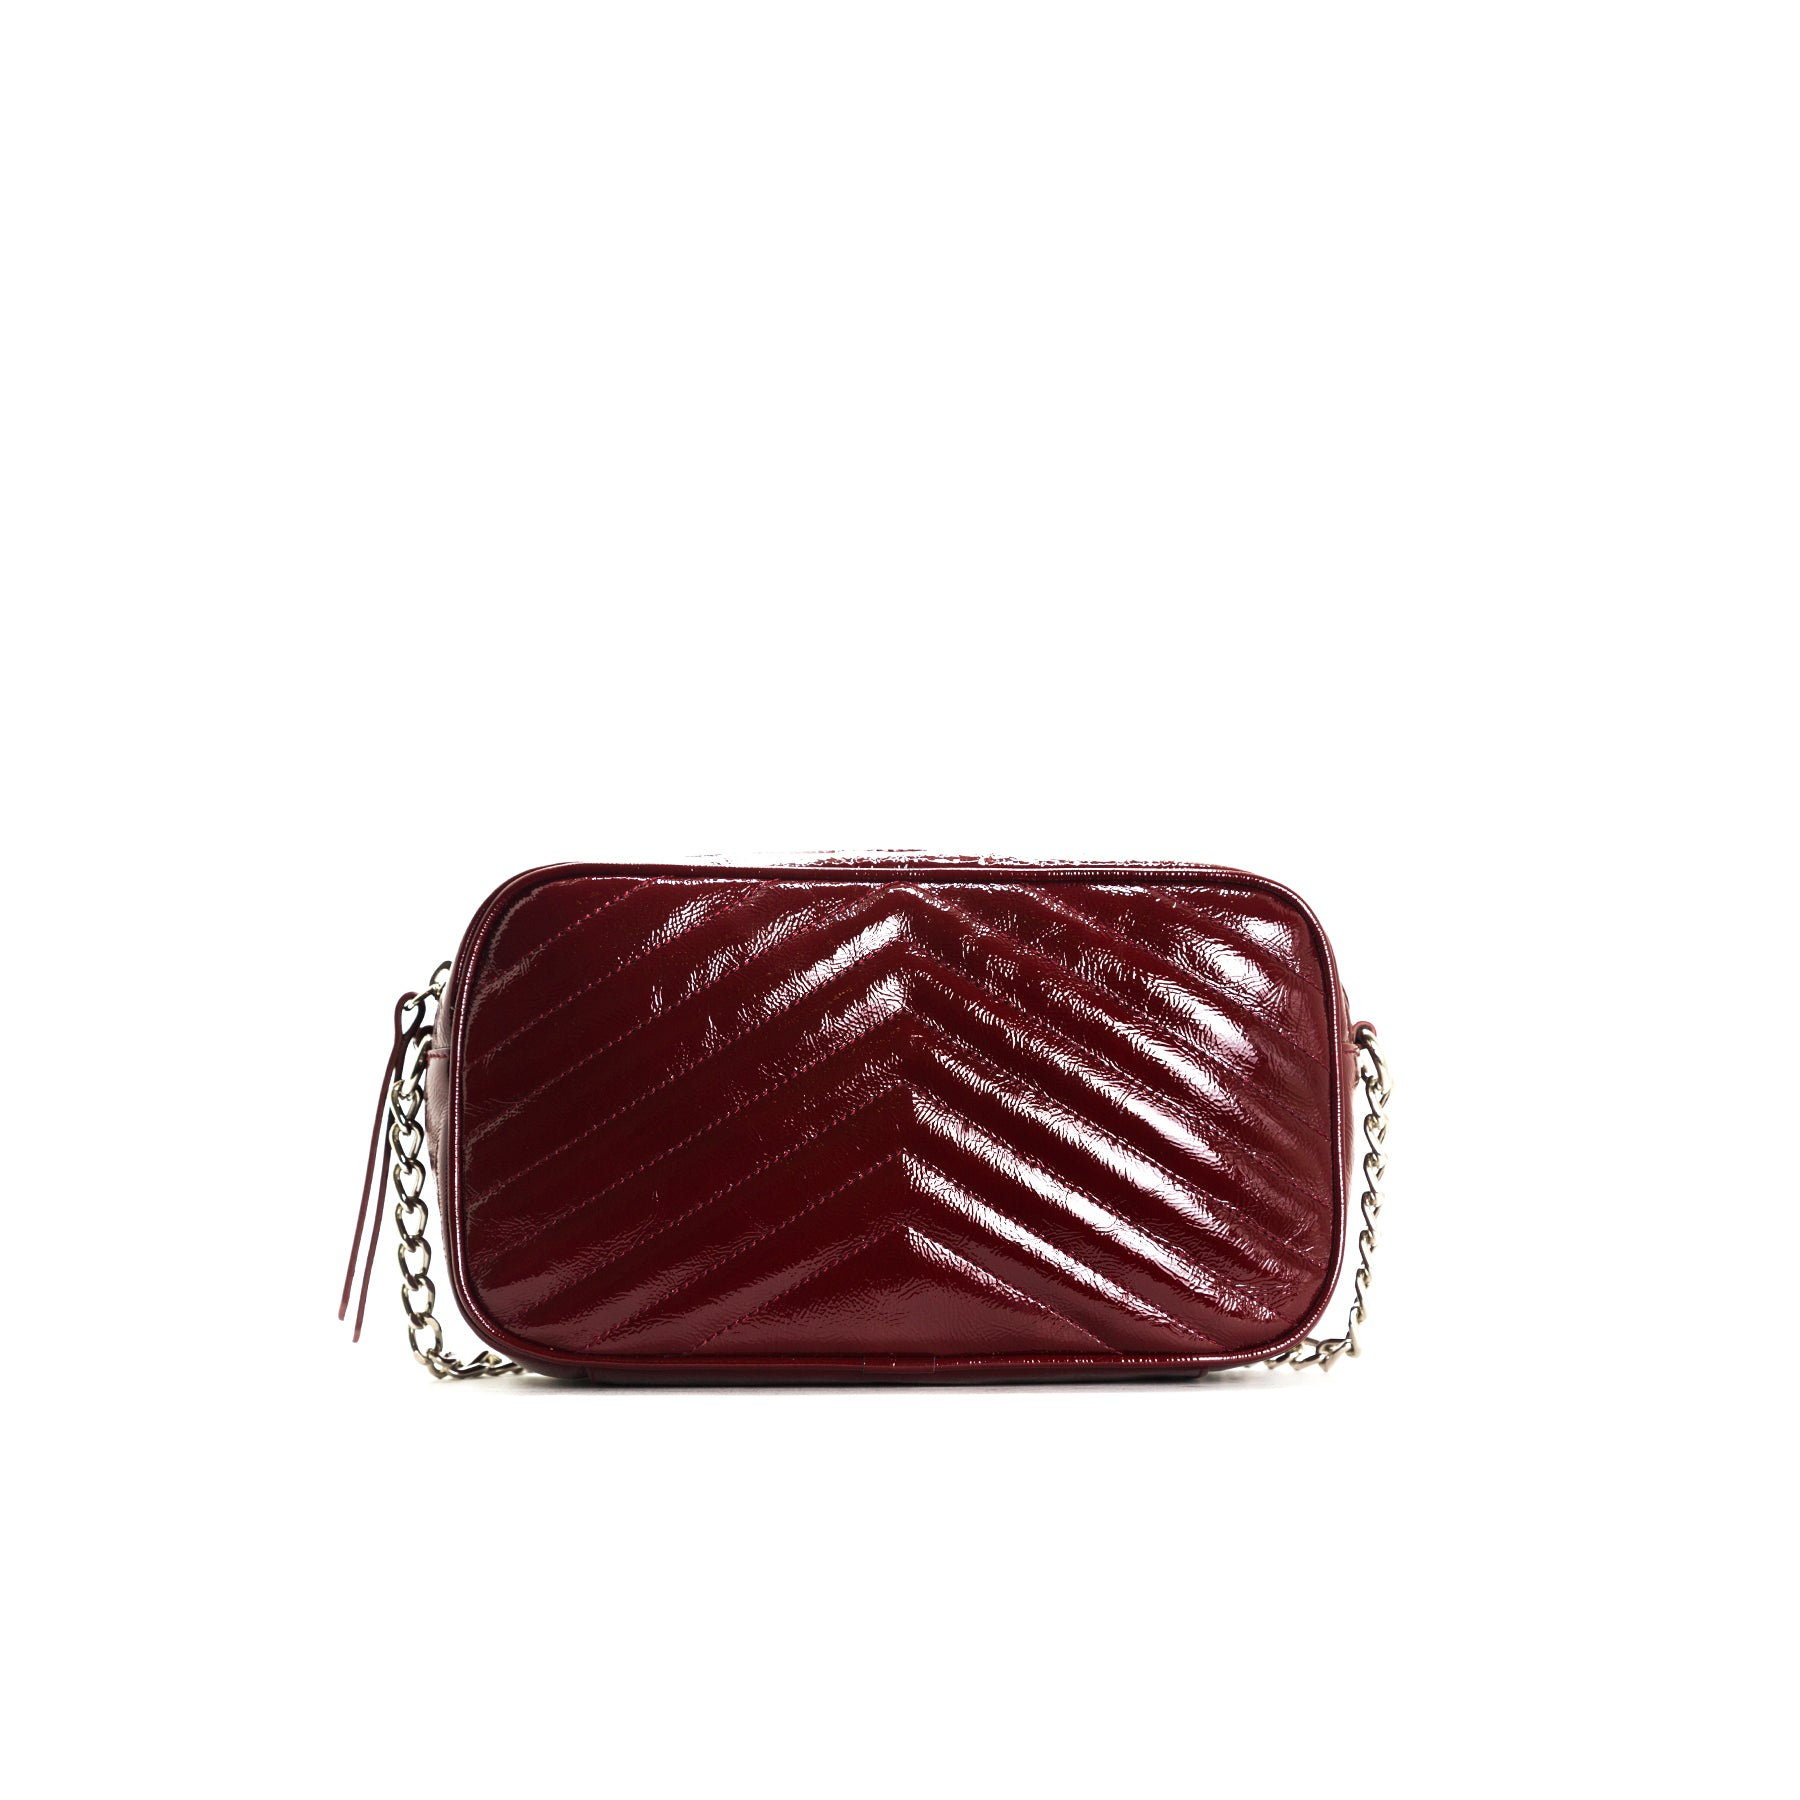 Bijoux Bordo Naplack Bag